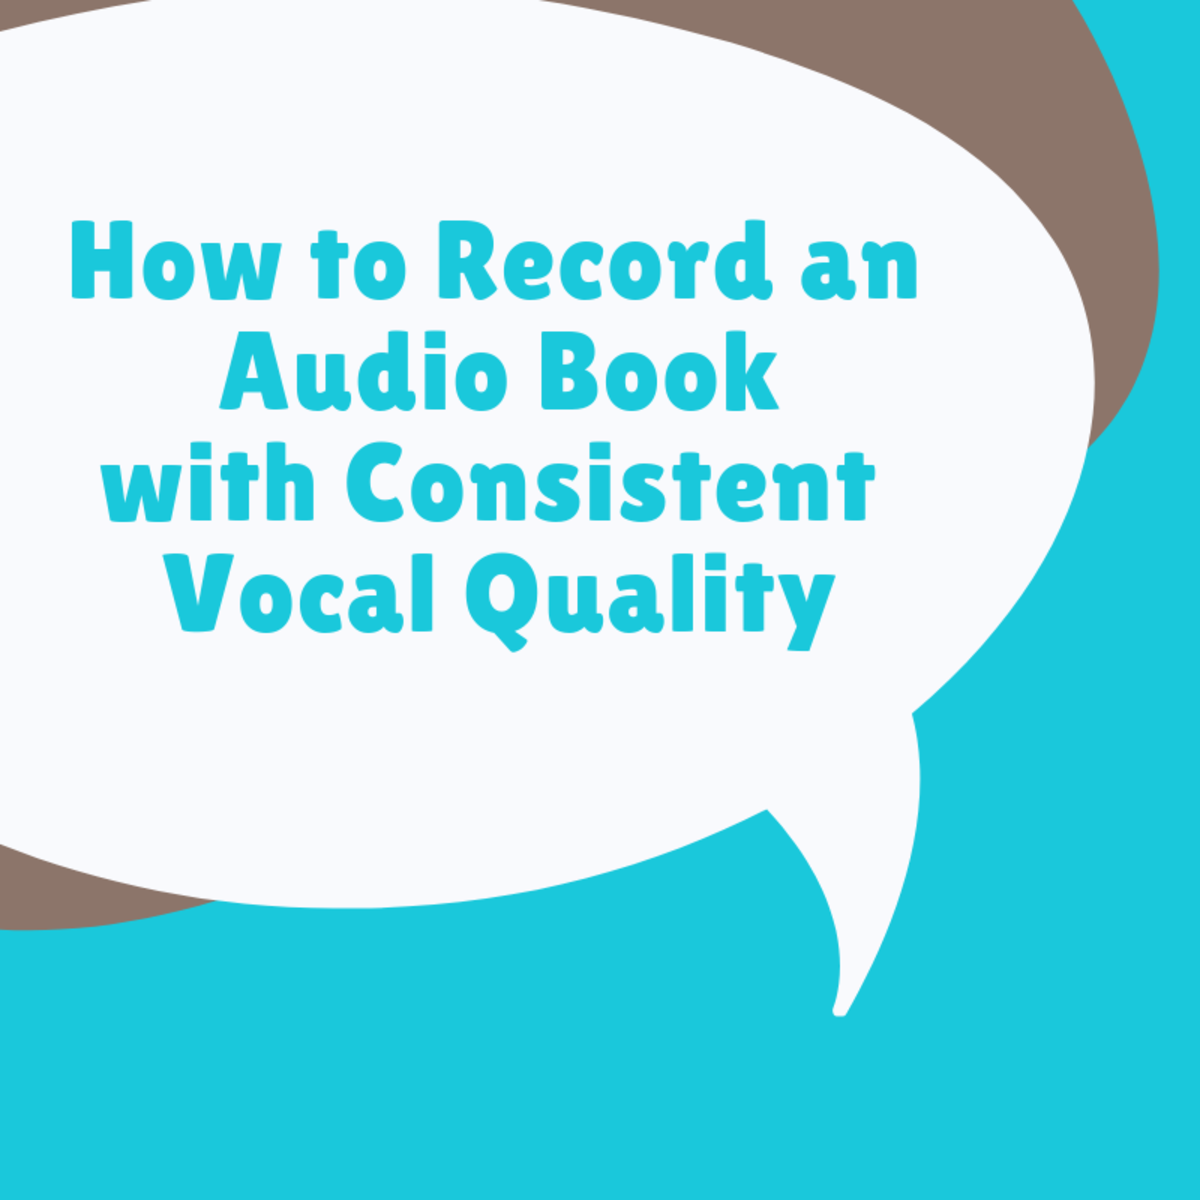 How to Record an Audio Book With More Consistent Vocal Quality